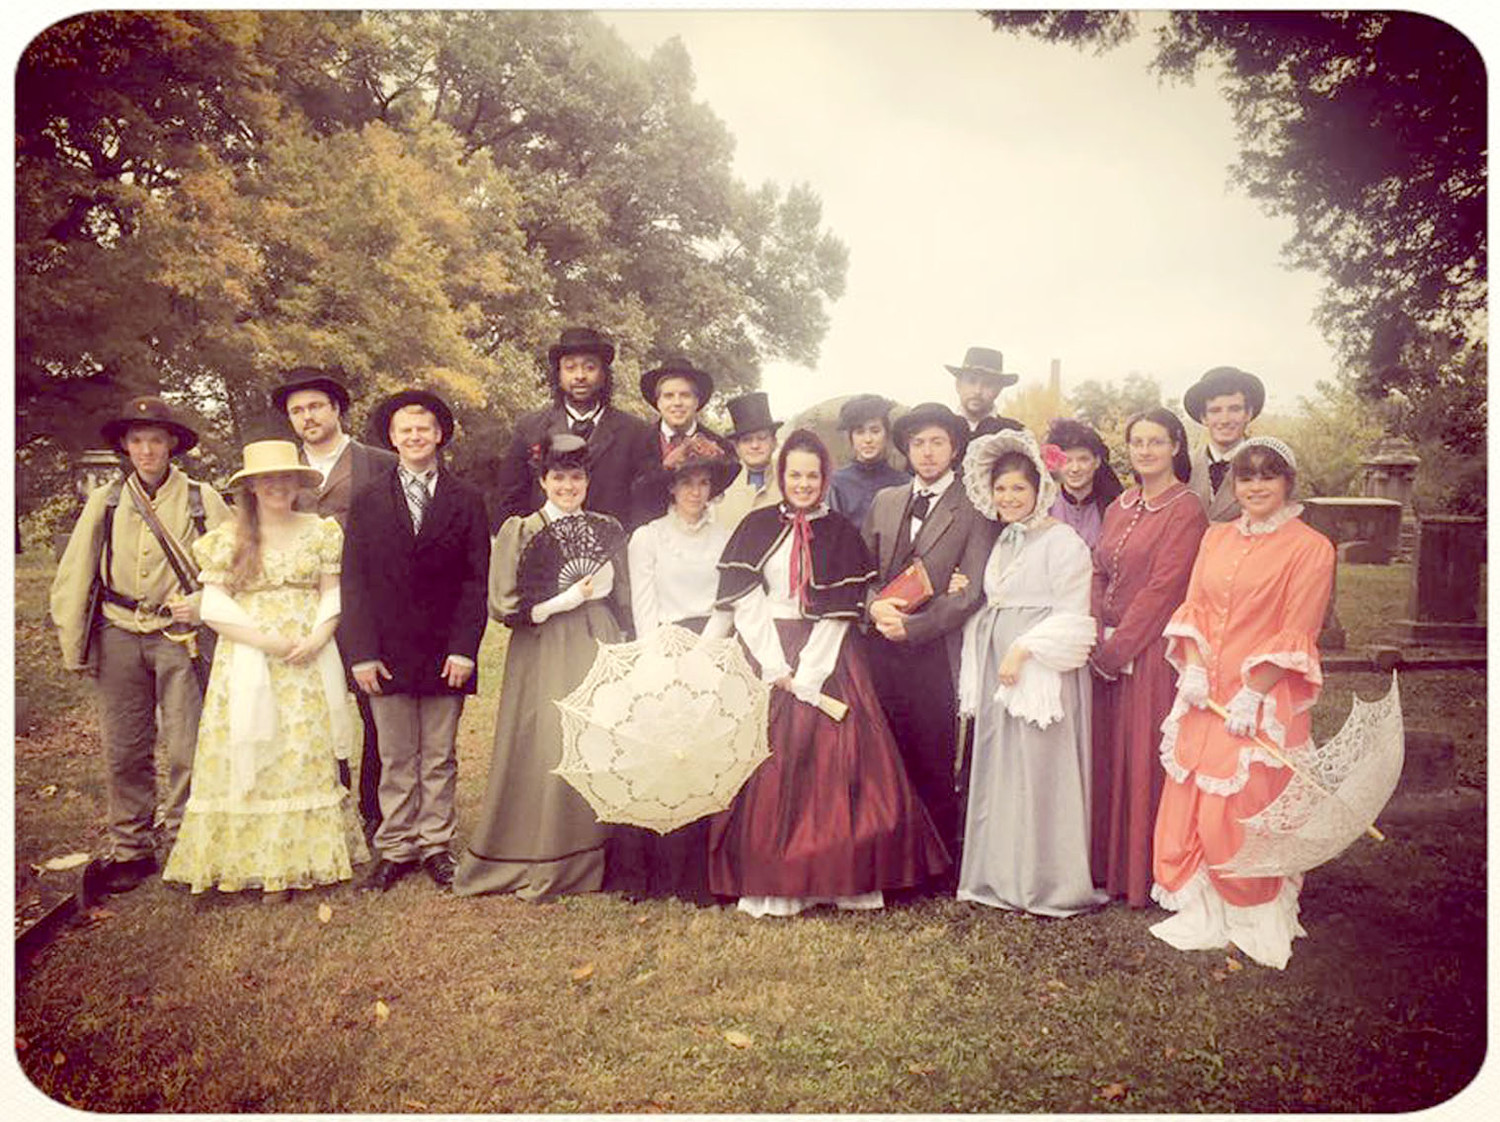 This file photo of a previous Fort Hill Cemetery Tour shows the students in period dress for the individual they are portraying.